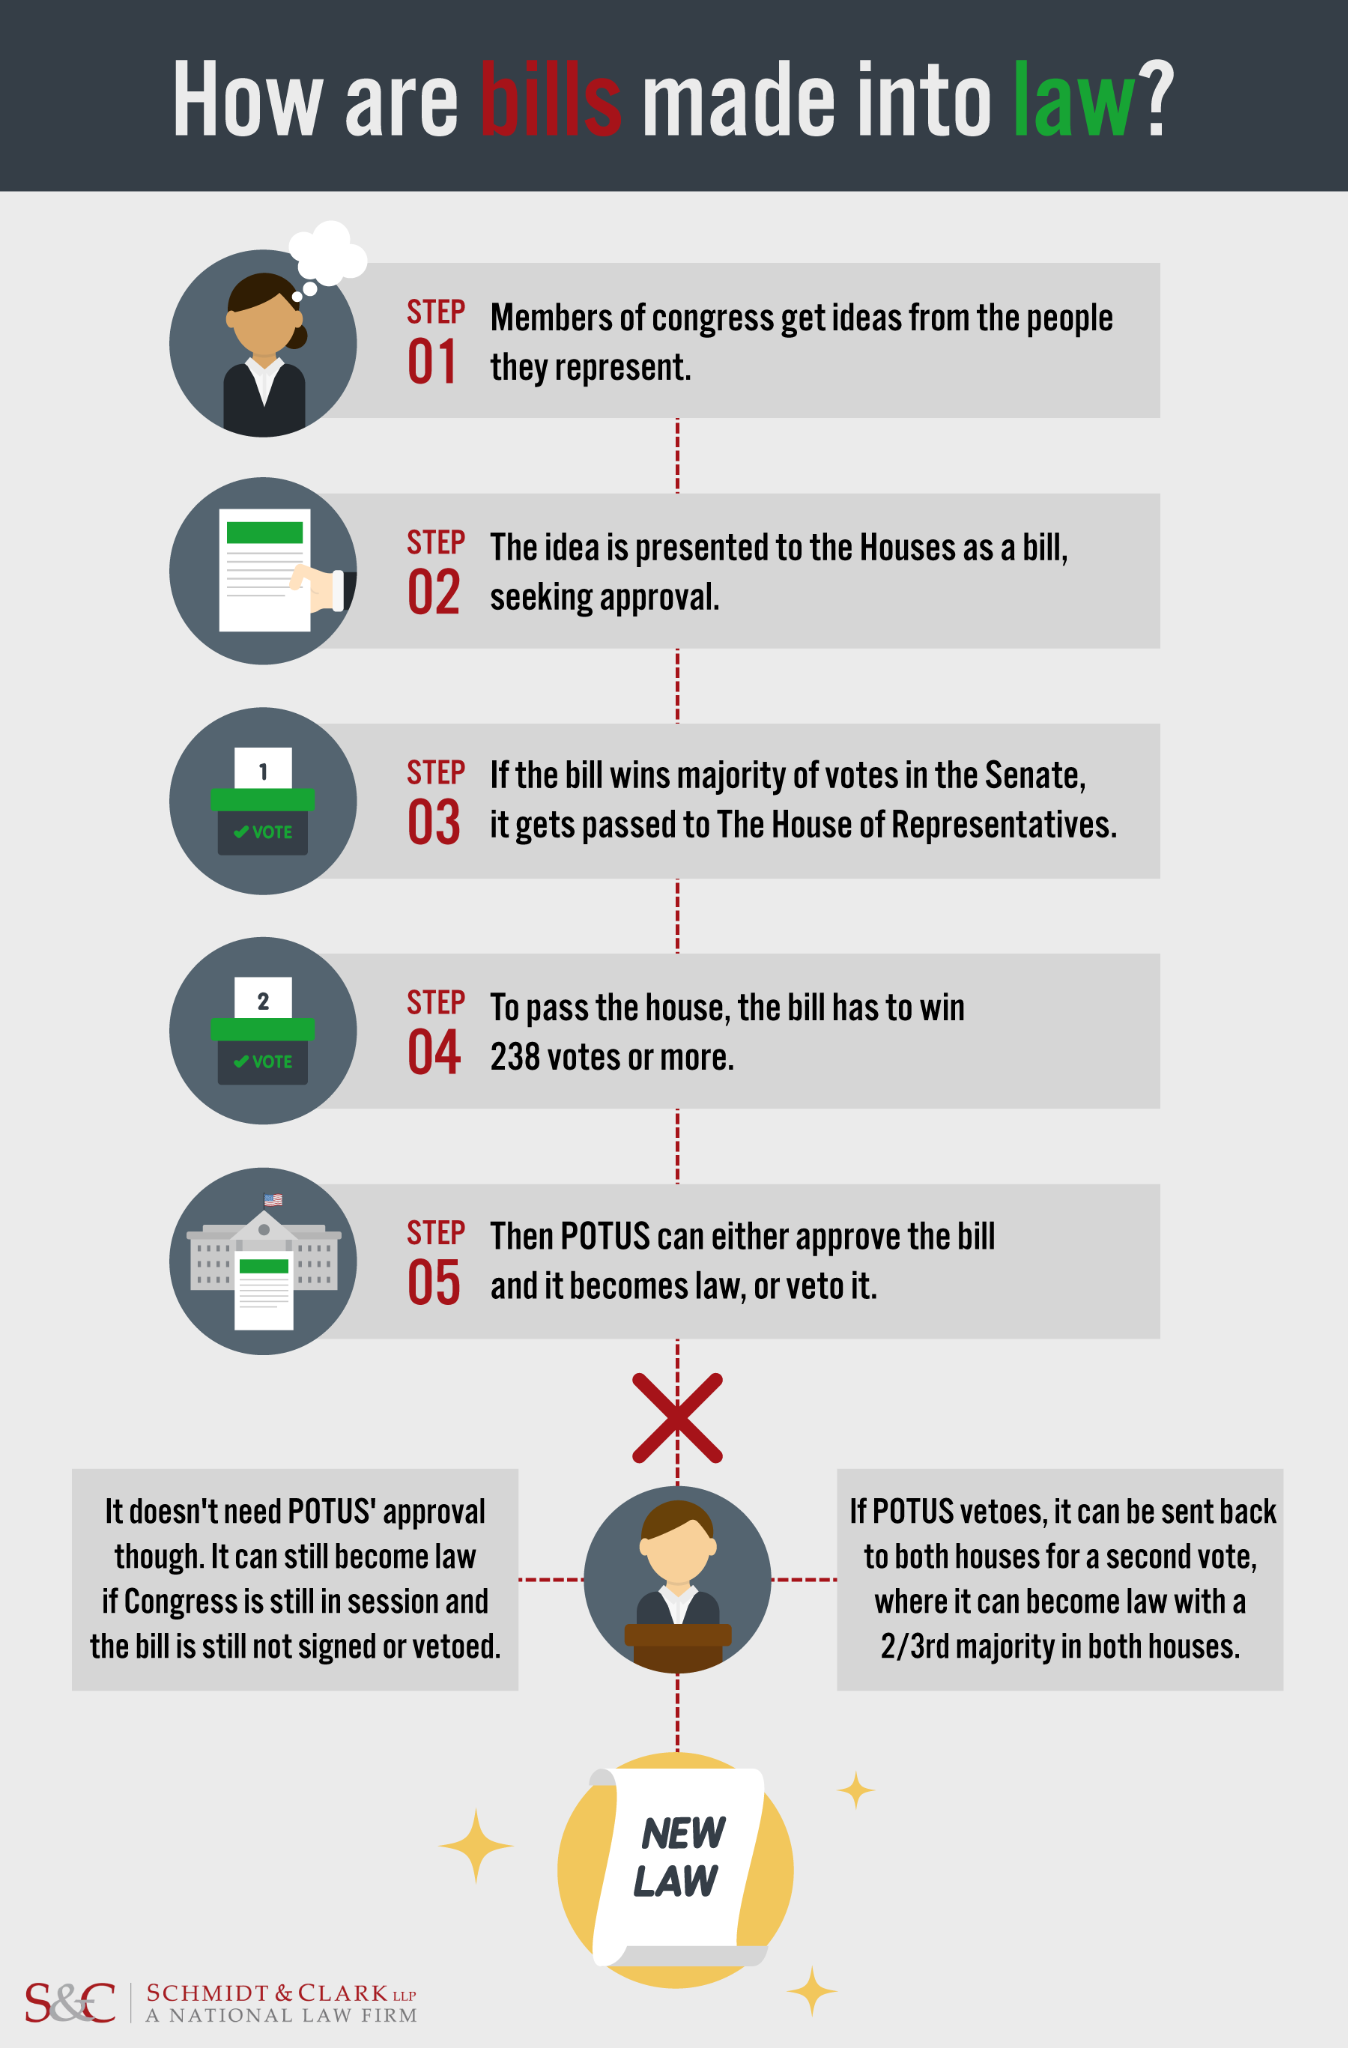 Bills into law infographic